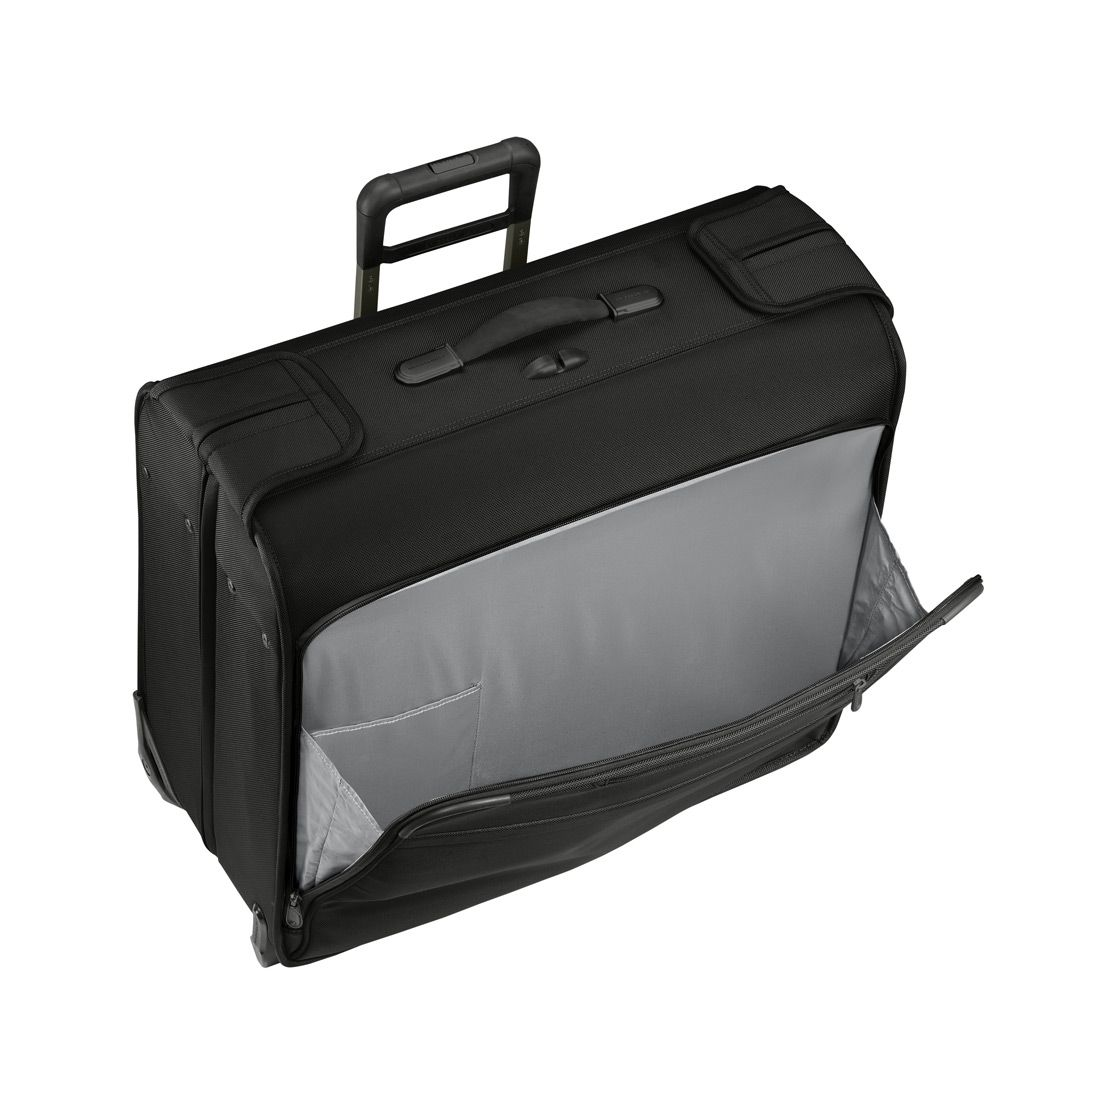 Briggs & Riley Baseline Carry-On Wheeled Garment Bag | London LuggageLondon Luggage